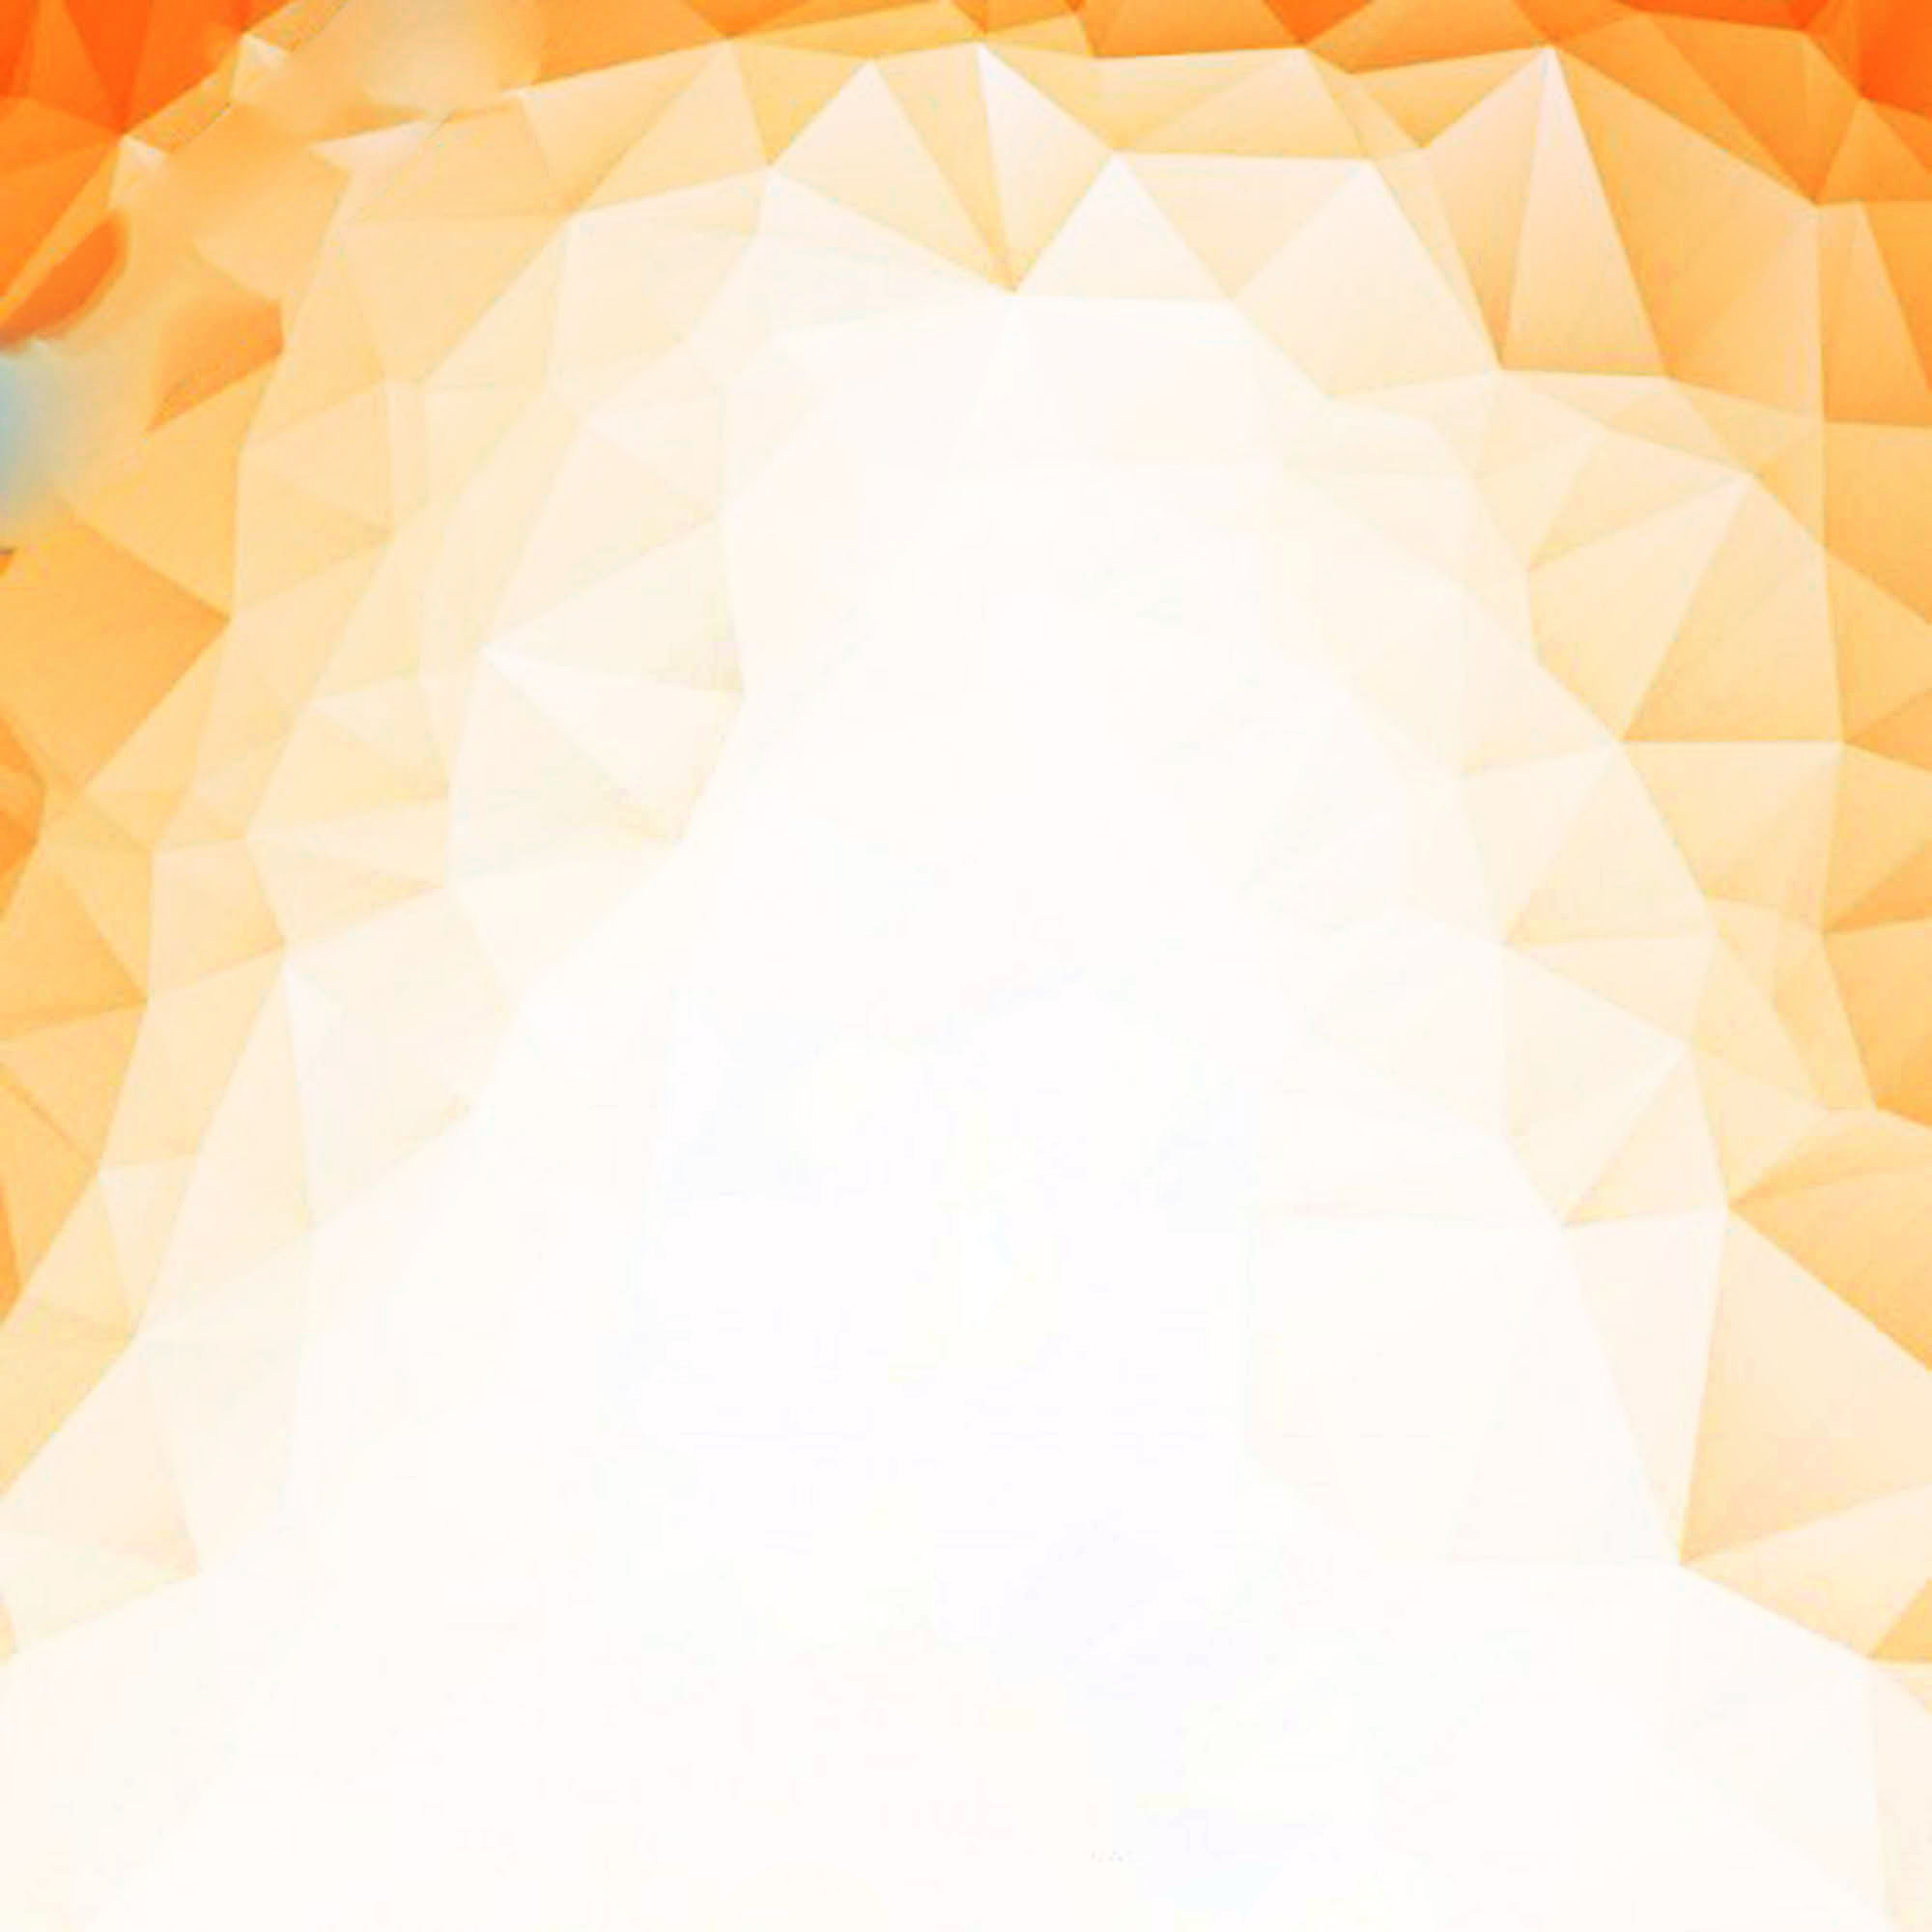 orange polygon abstract background  orange  polygon